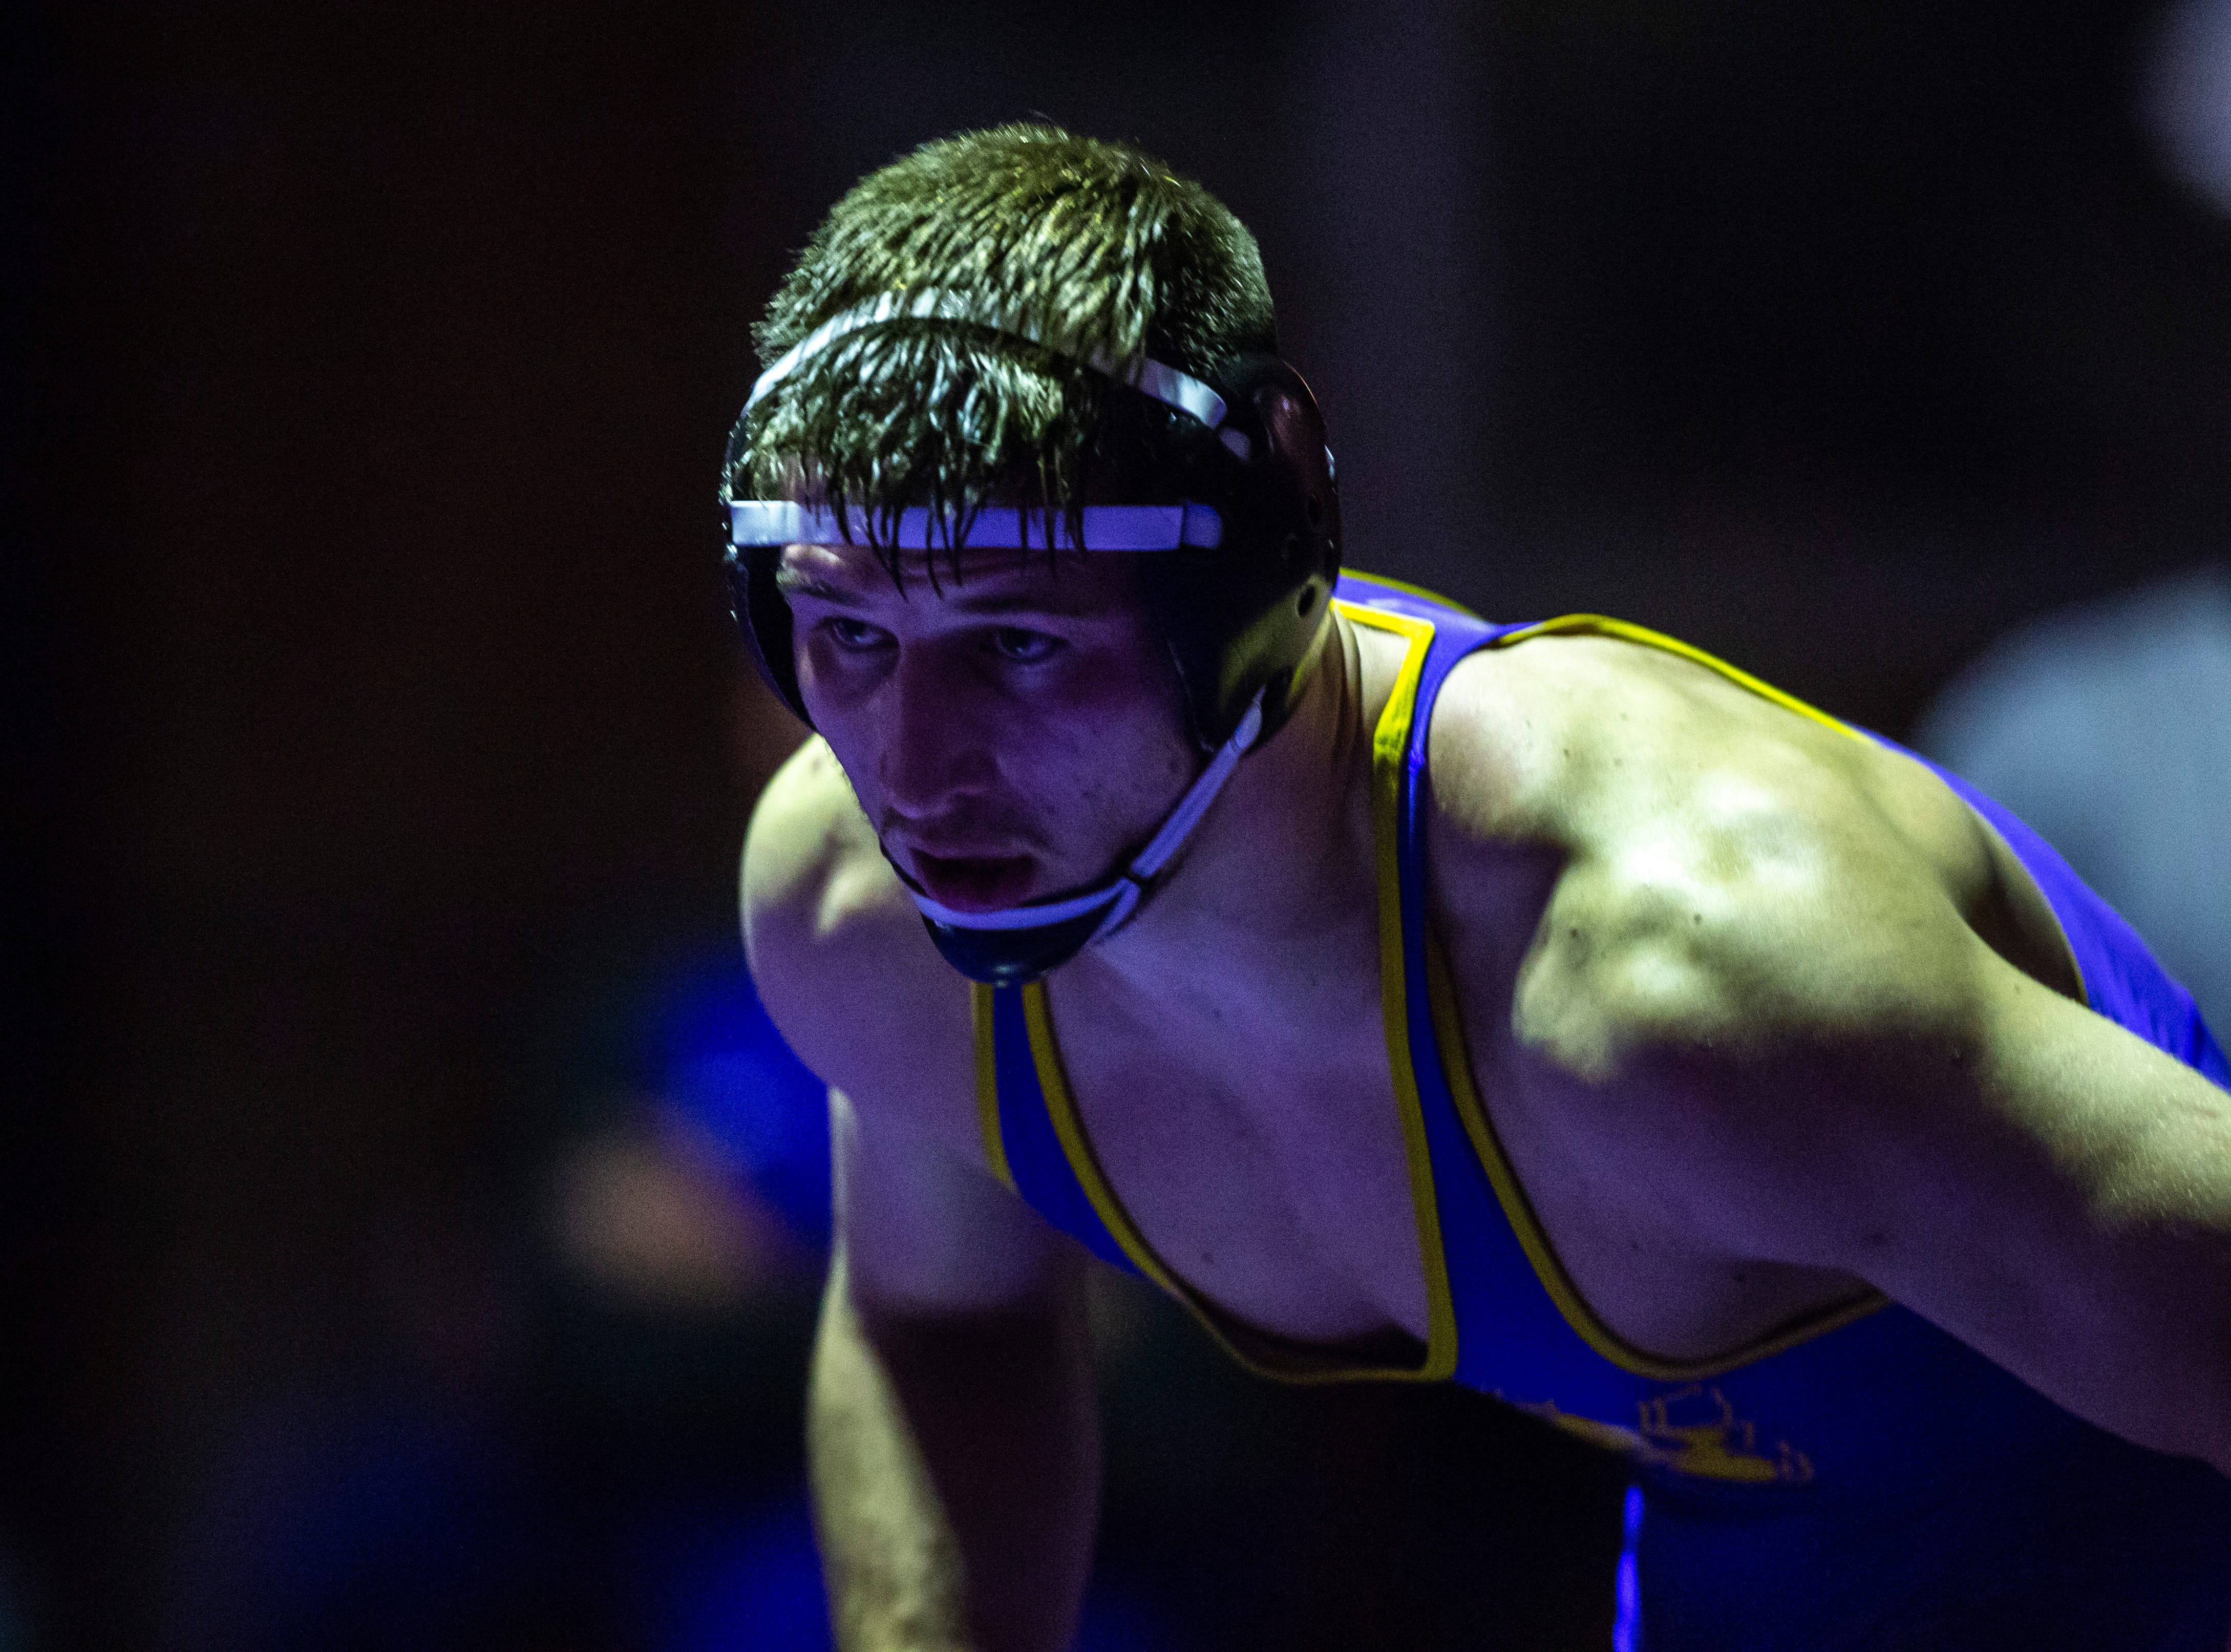 Northern Iowa's Drew Foster at 184 during a NCAA Big 12 wrestling dual on Thursday, Feb. 21, 2019 at the West Gymnasium in Cedar Falls, Iowa.